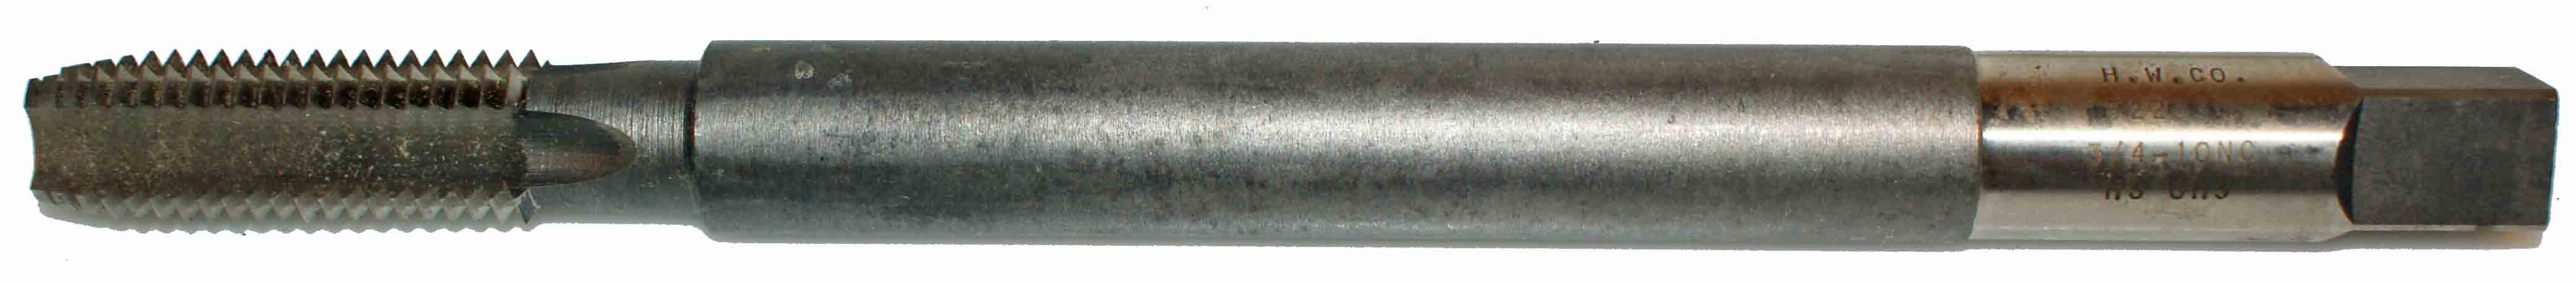 "3/4"" - 10NC GH3 High-Speed Tap - Long"